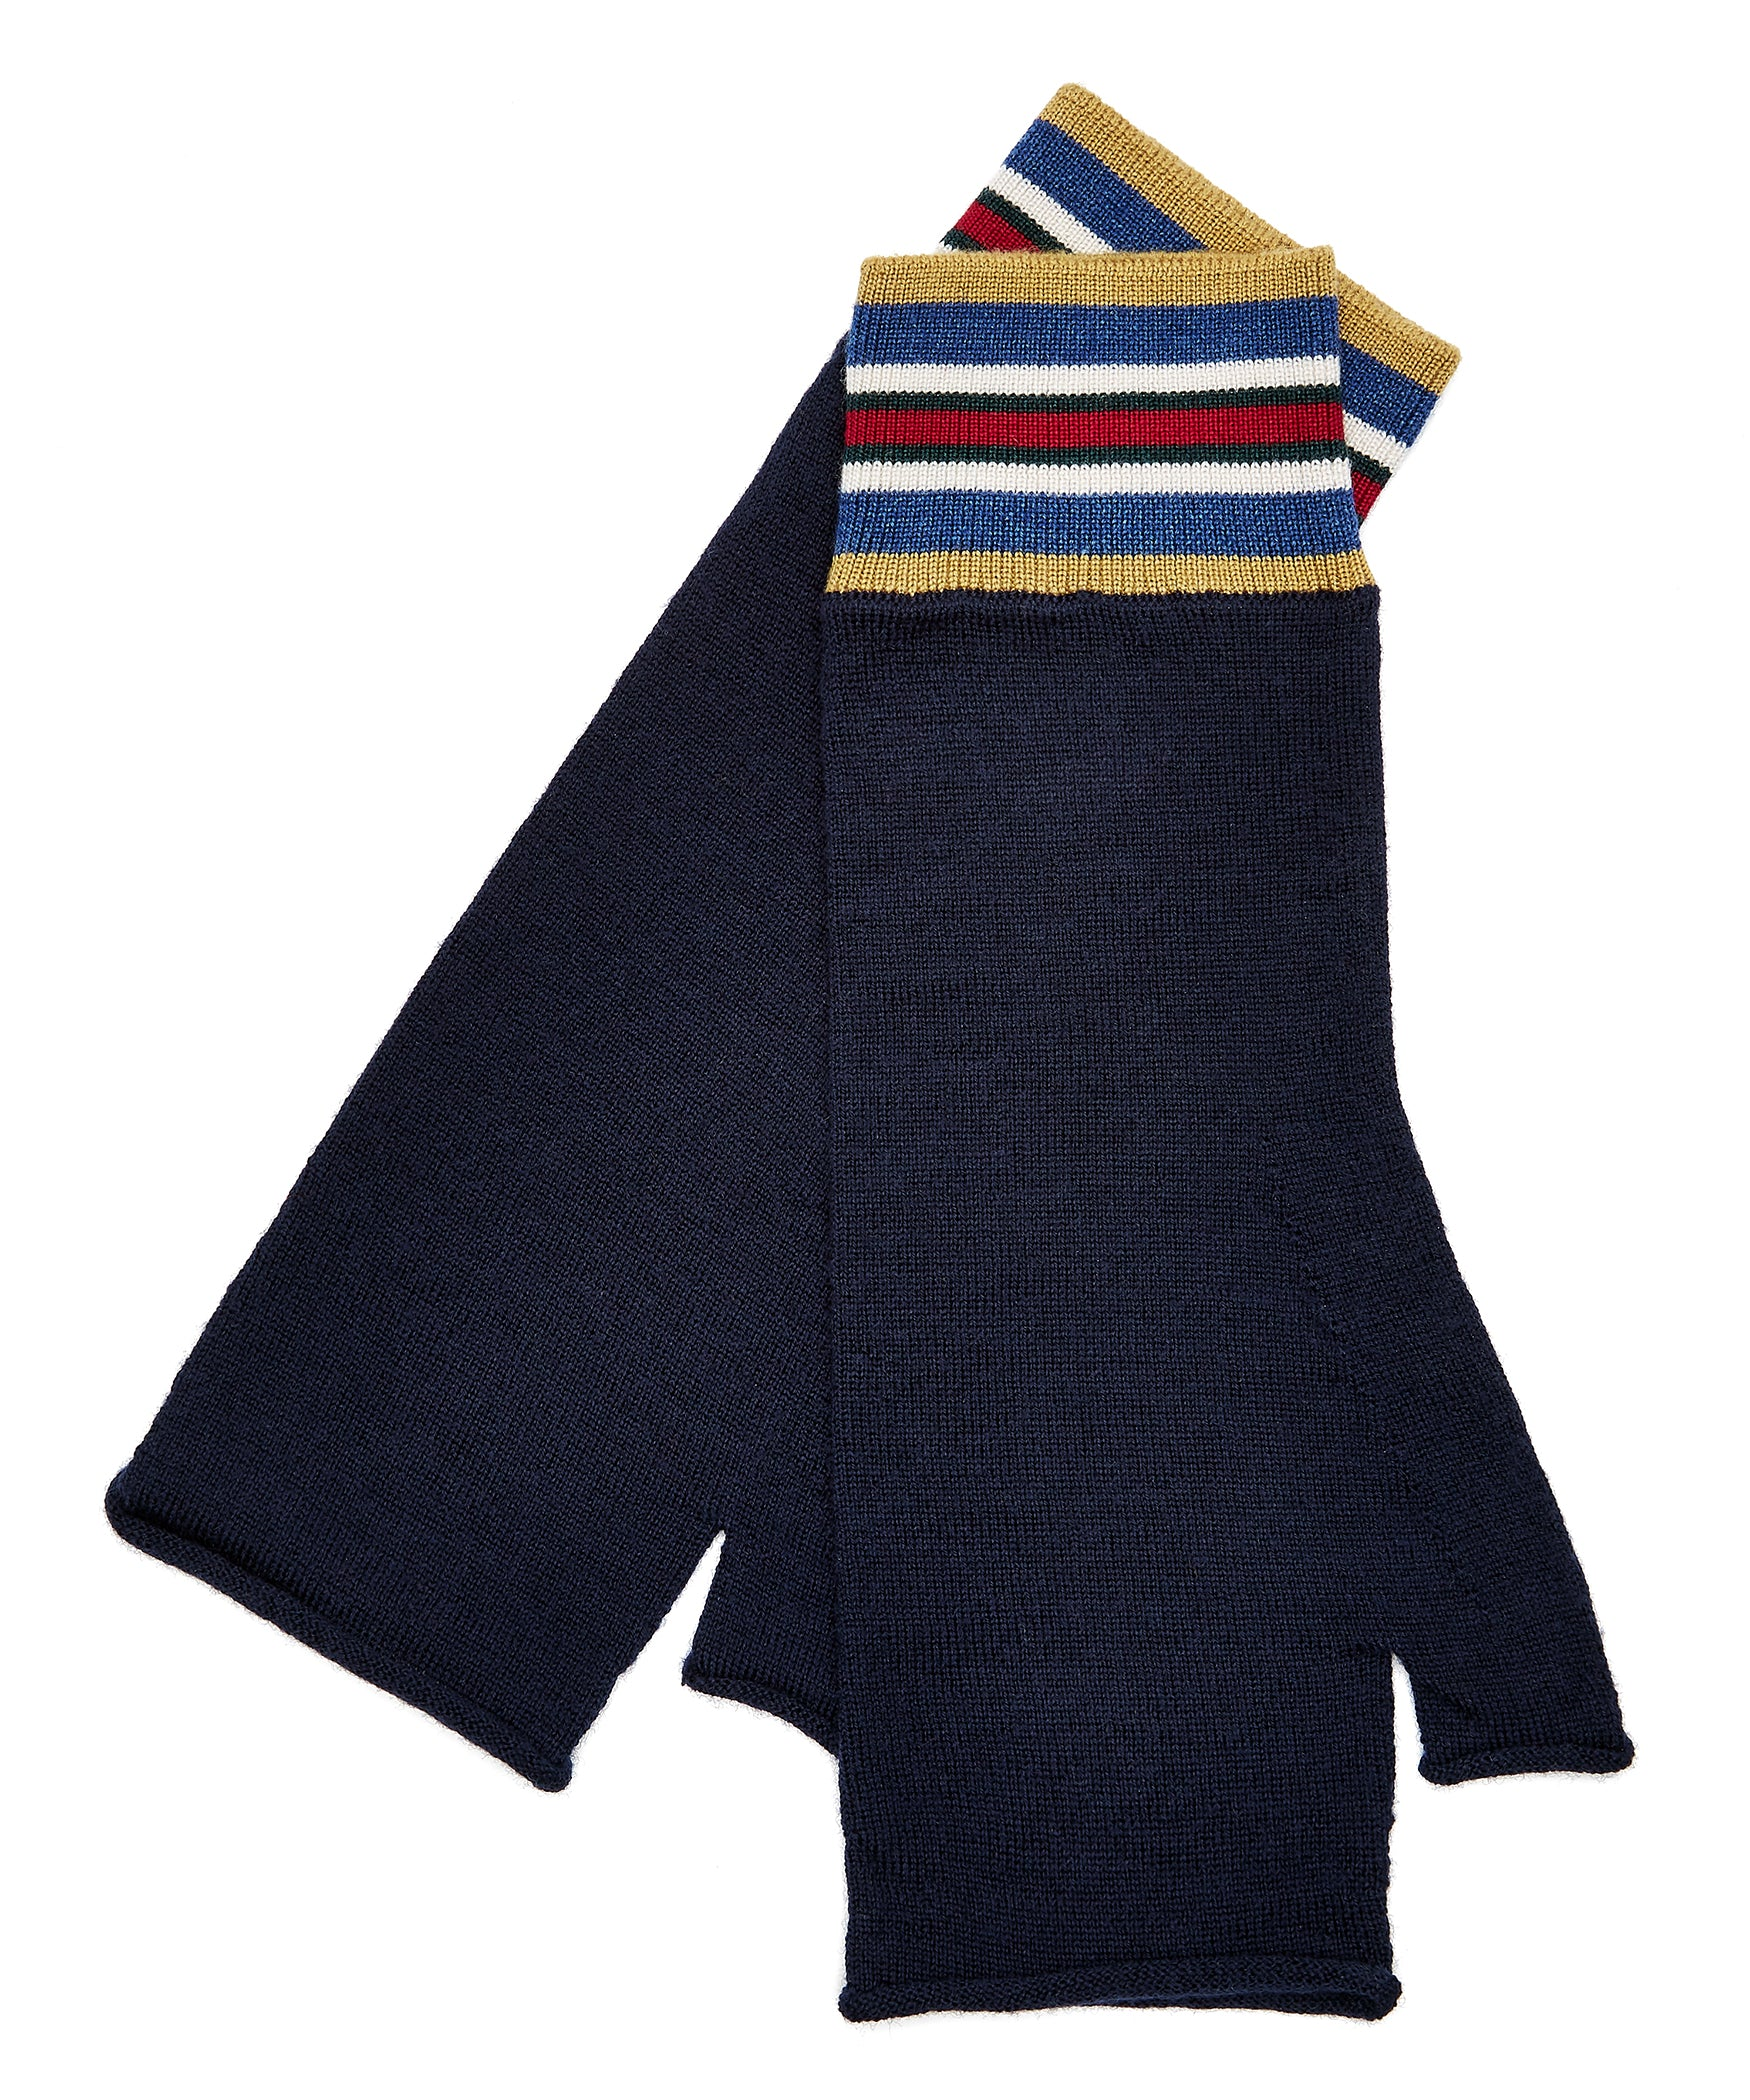 Navy 2 Extrafine Merino Fingerless Gloves